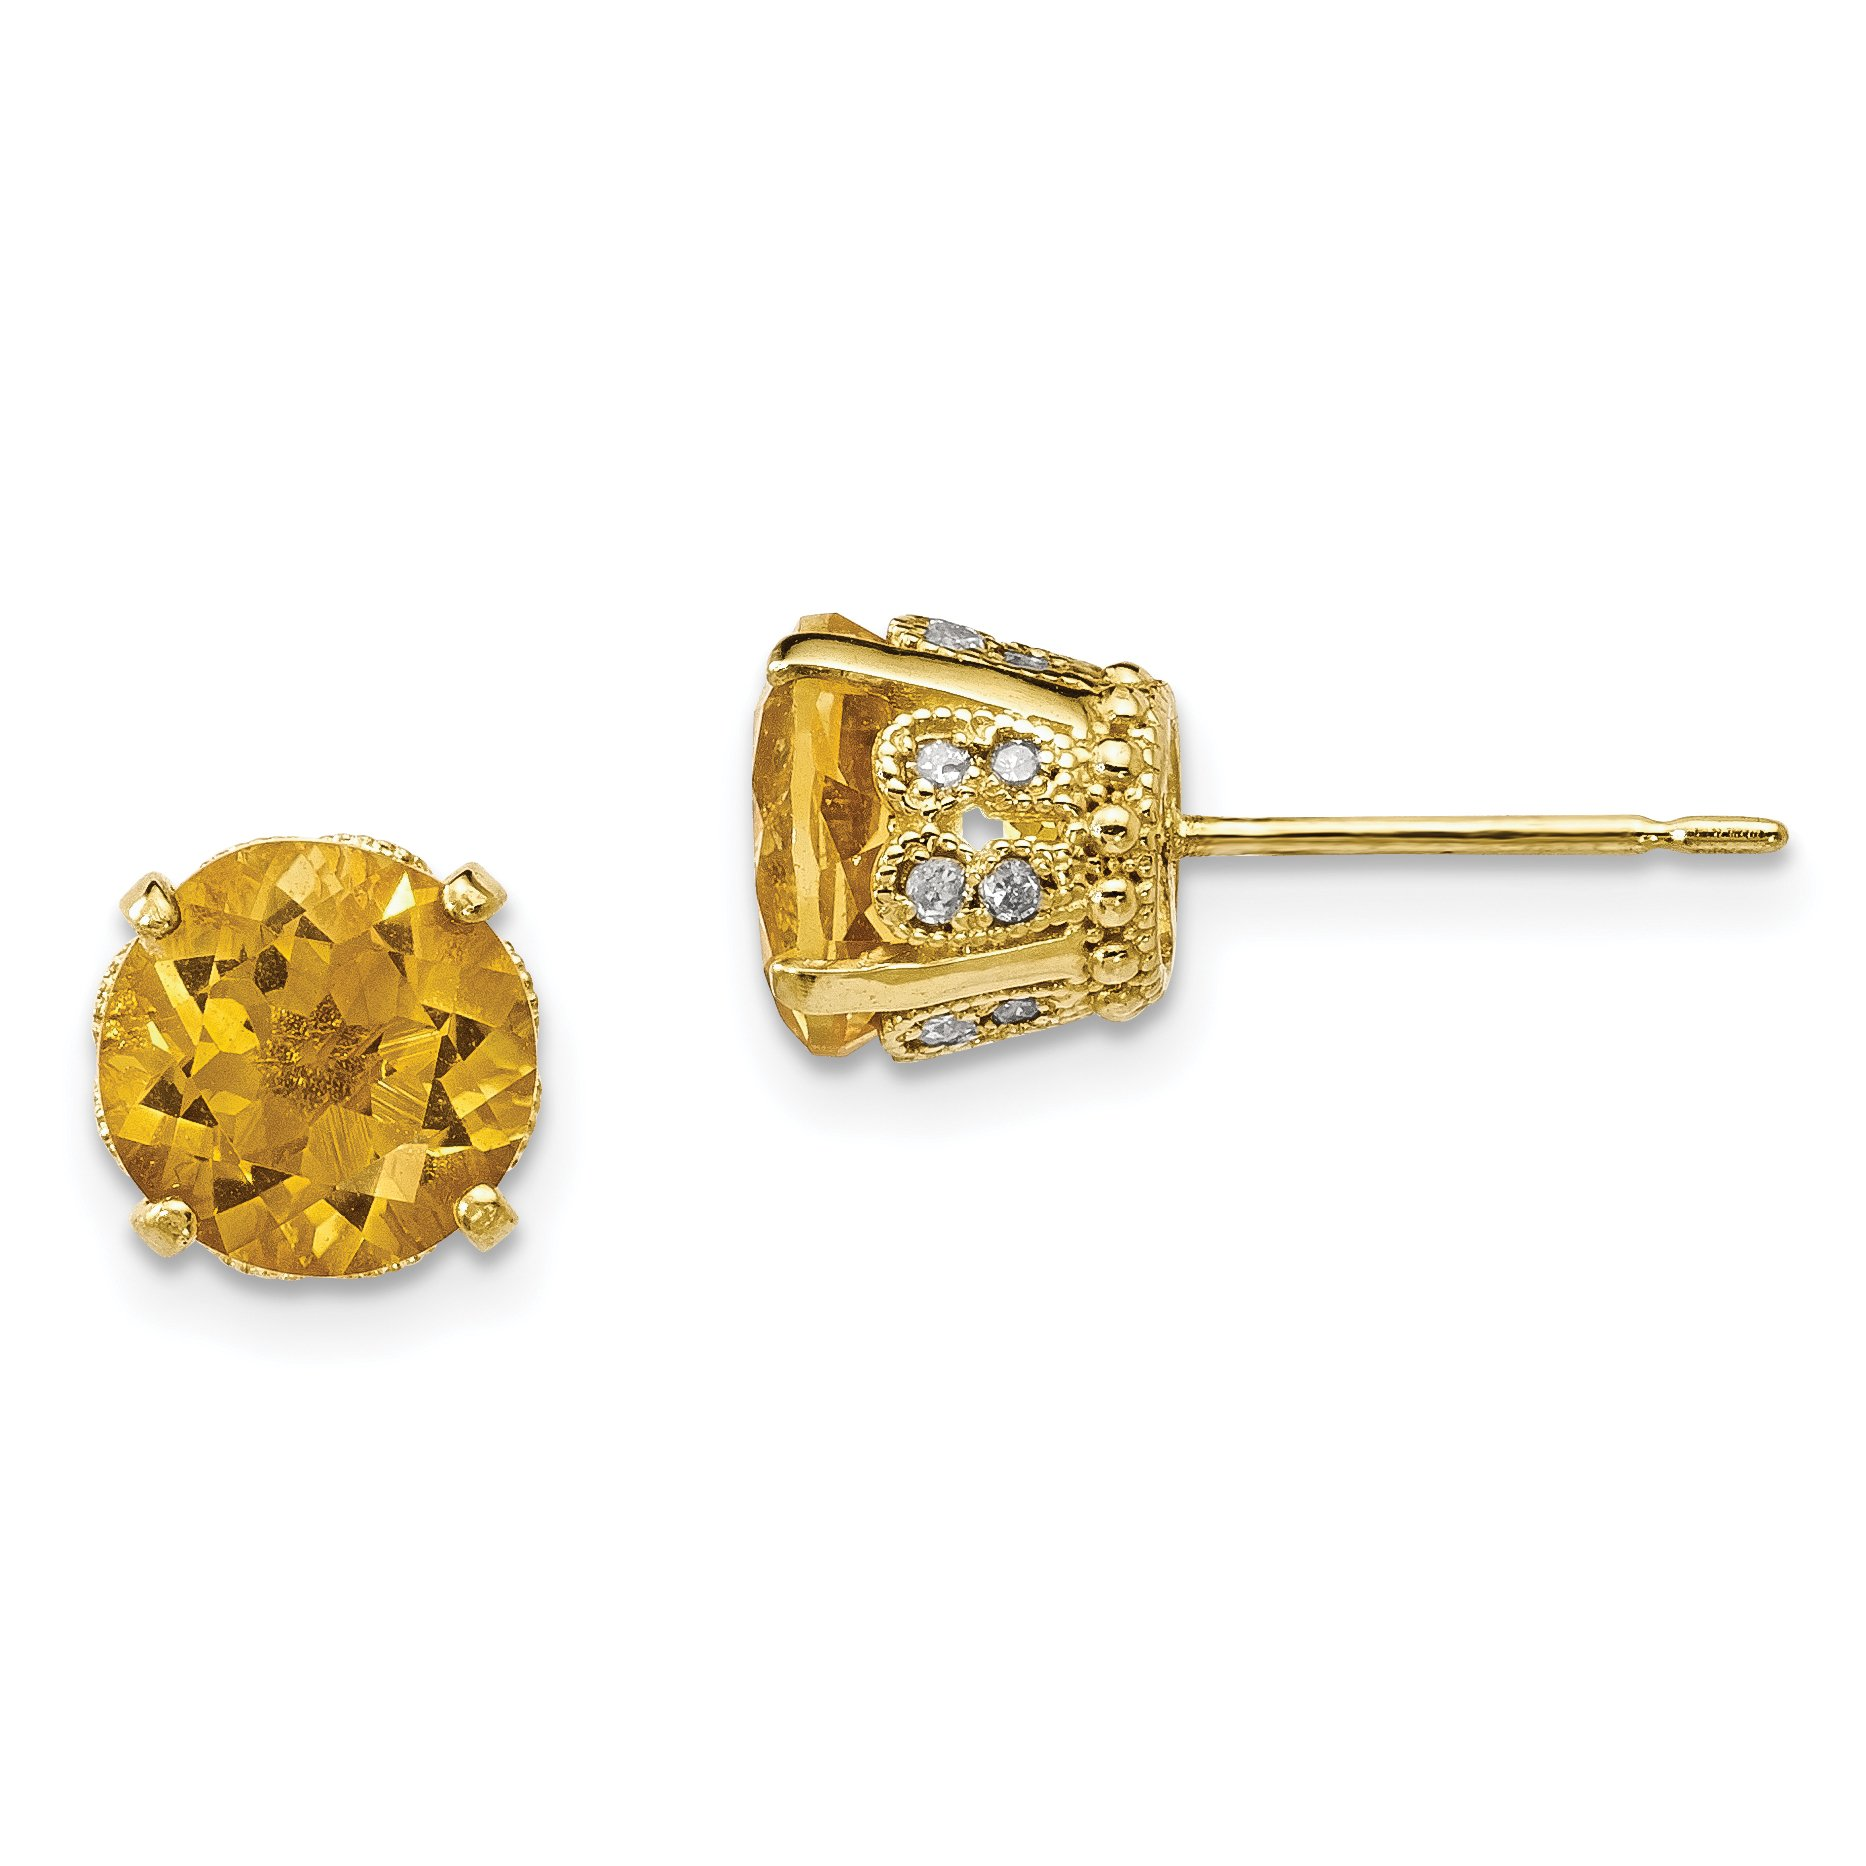 ICE CARATS 10k Yellow Gold Tiara Collection Diamond Citrine Post Stud Ball Button Earrings Set Birthstone Yc Fine Jewelry Gift For Women Heart